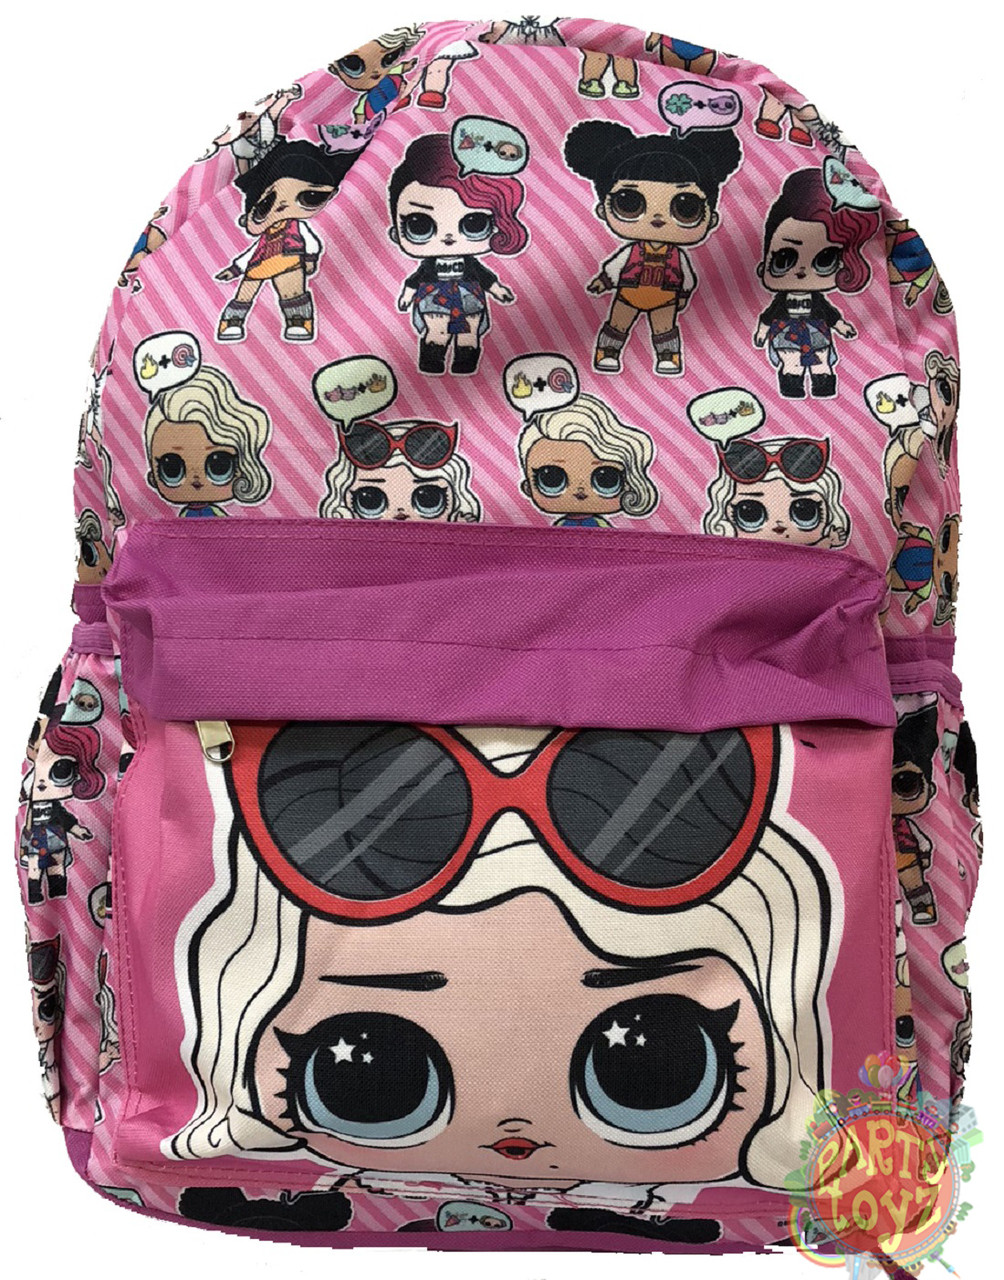 Backpack - LOL Surprise - Large 16 Inch - Pink Purple